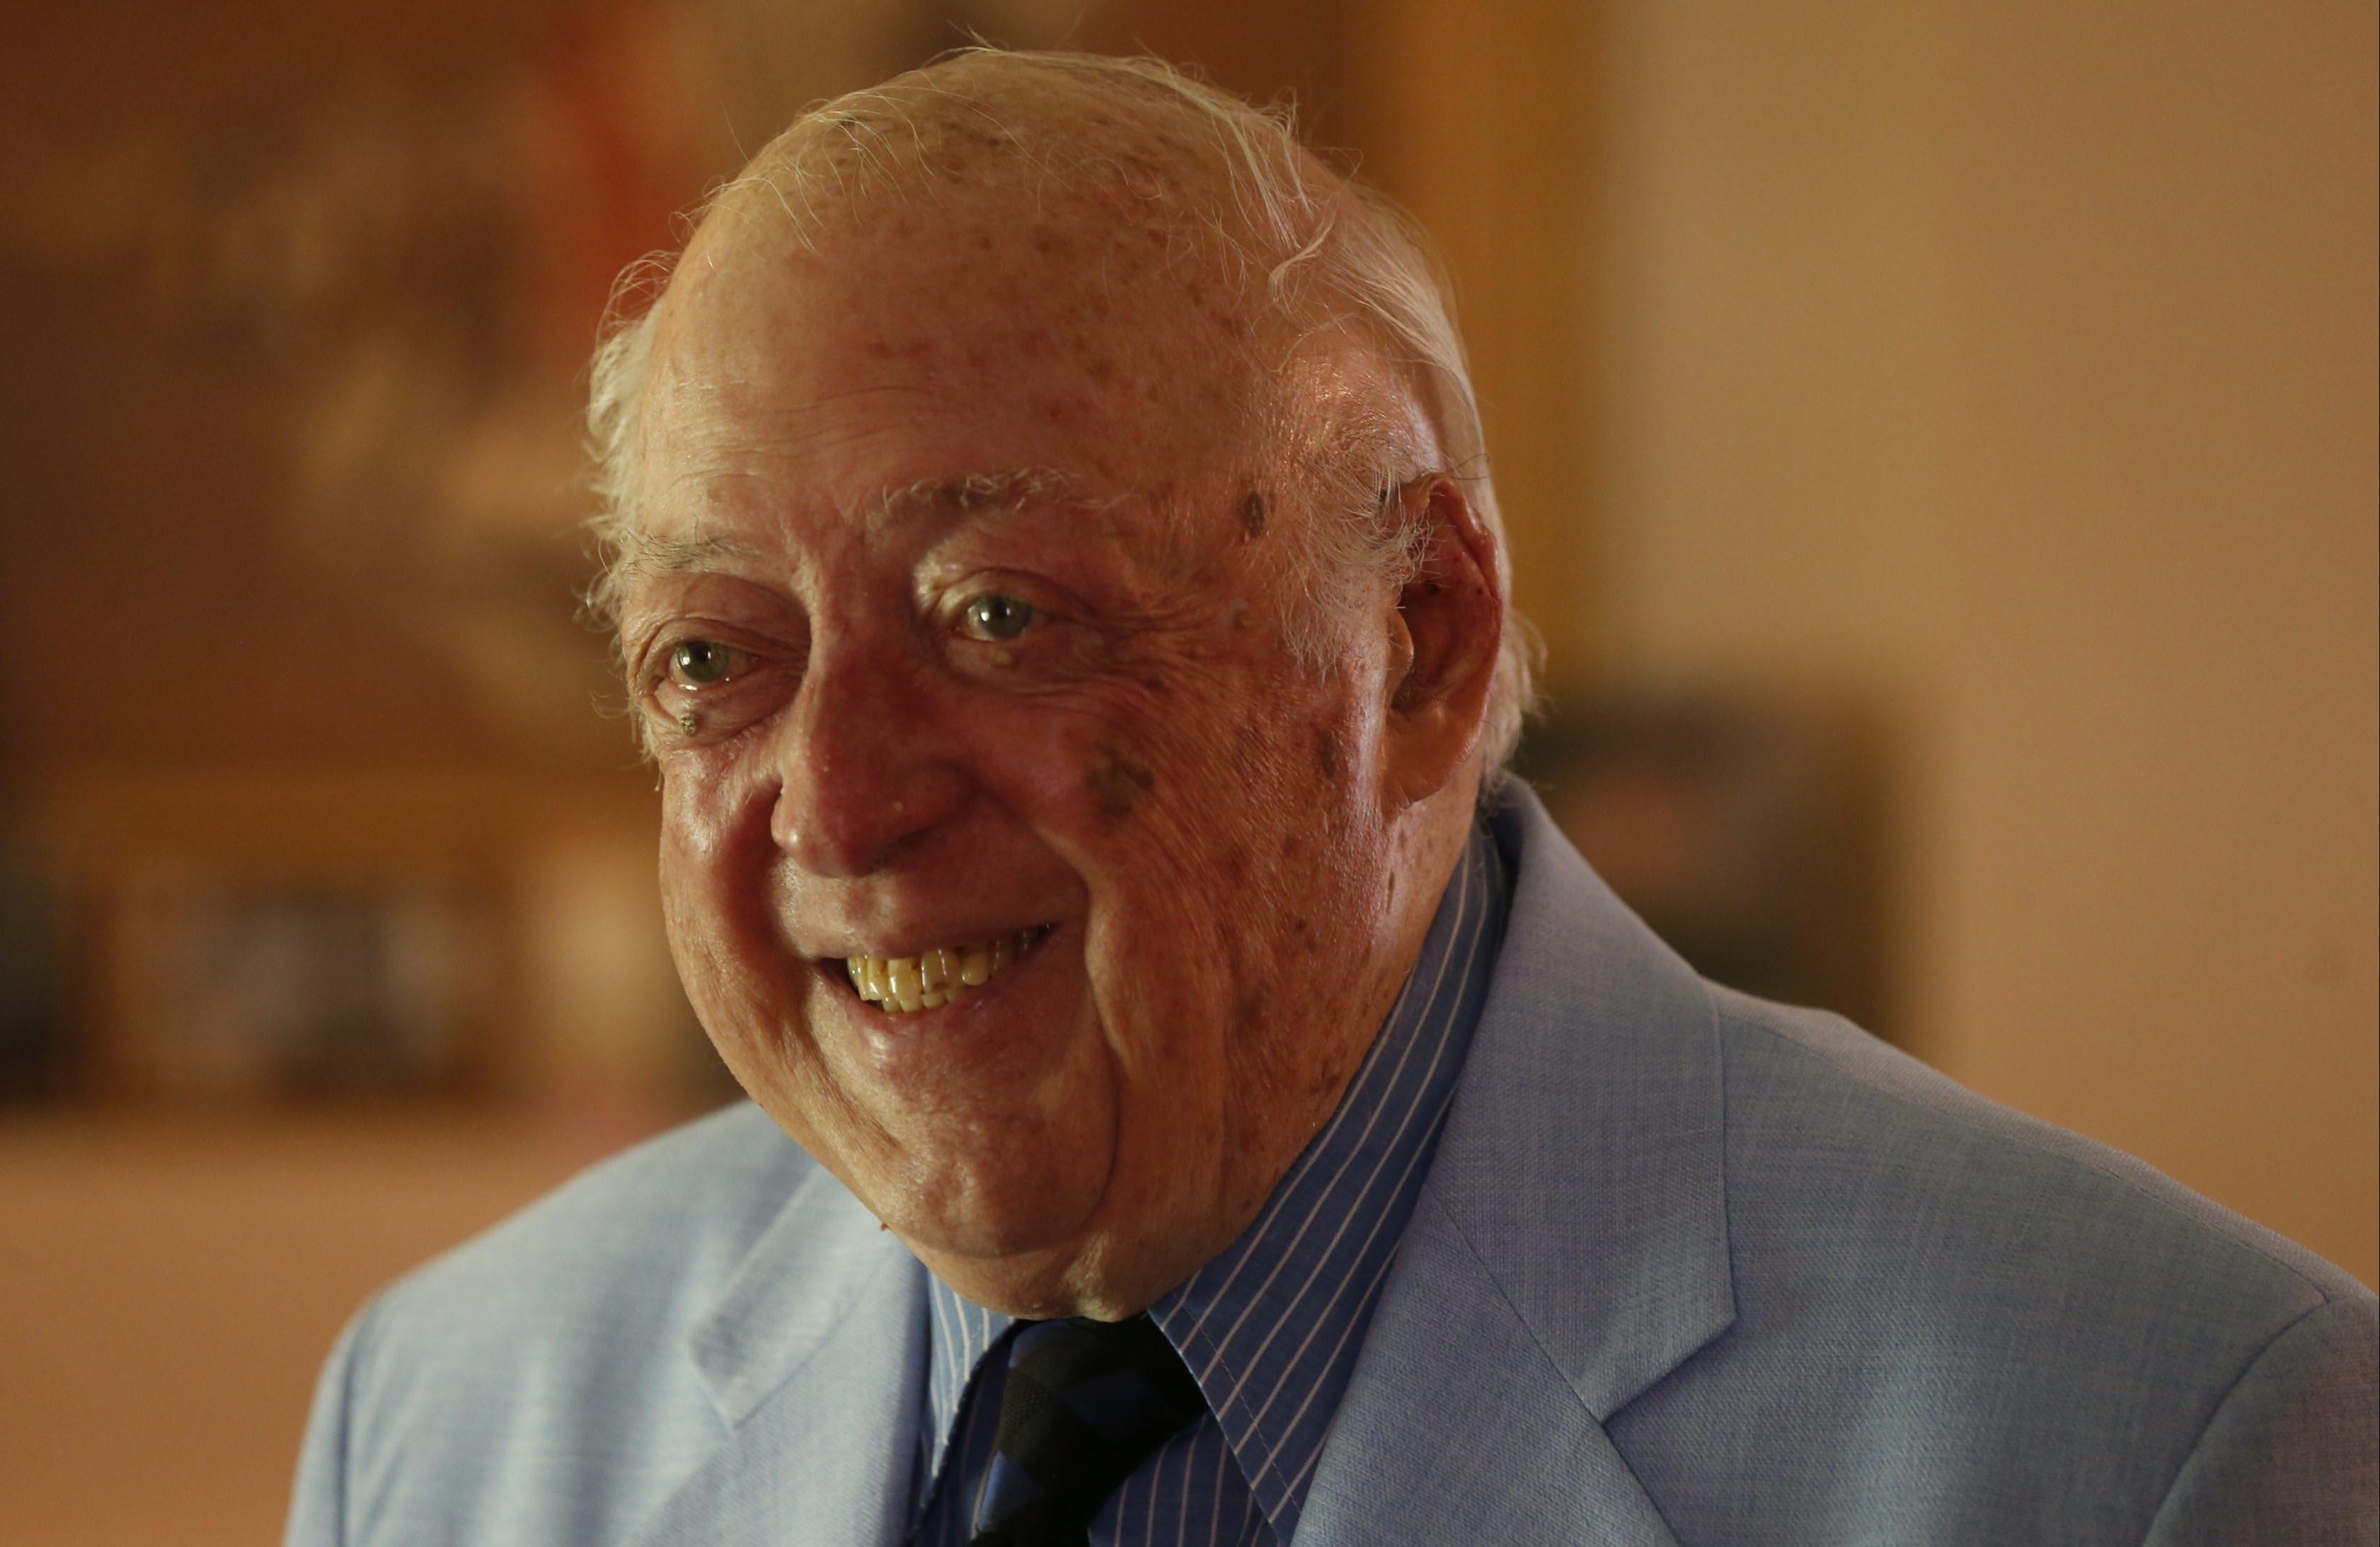 John F. Canale saw plenty of action as a navigator in B-17 bombers during WWII.